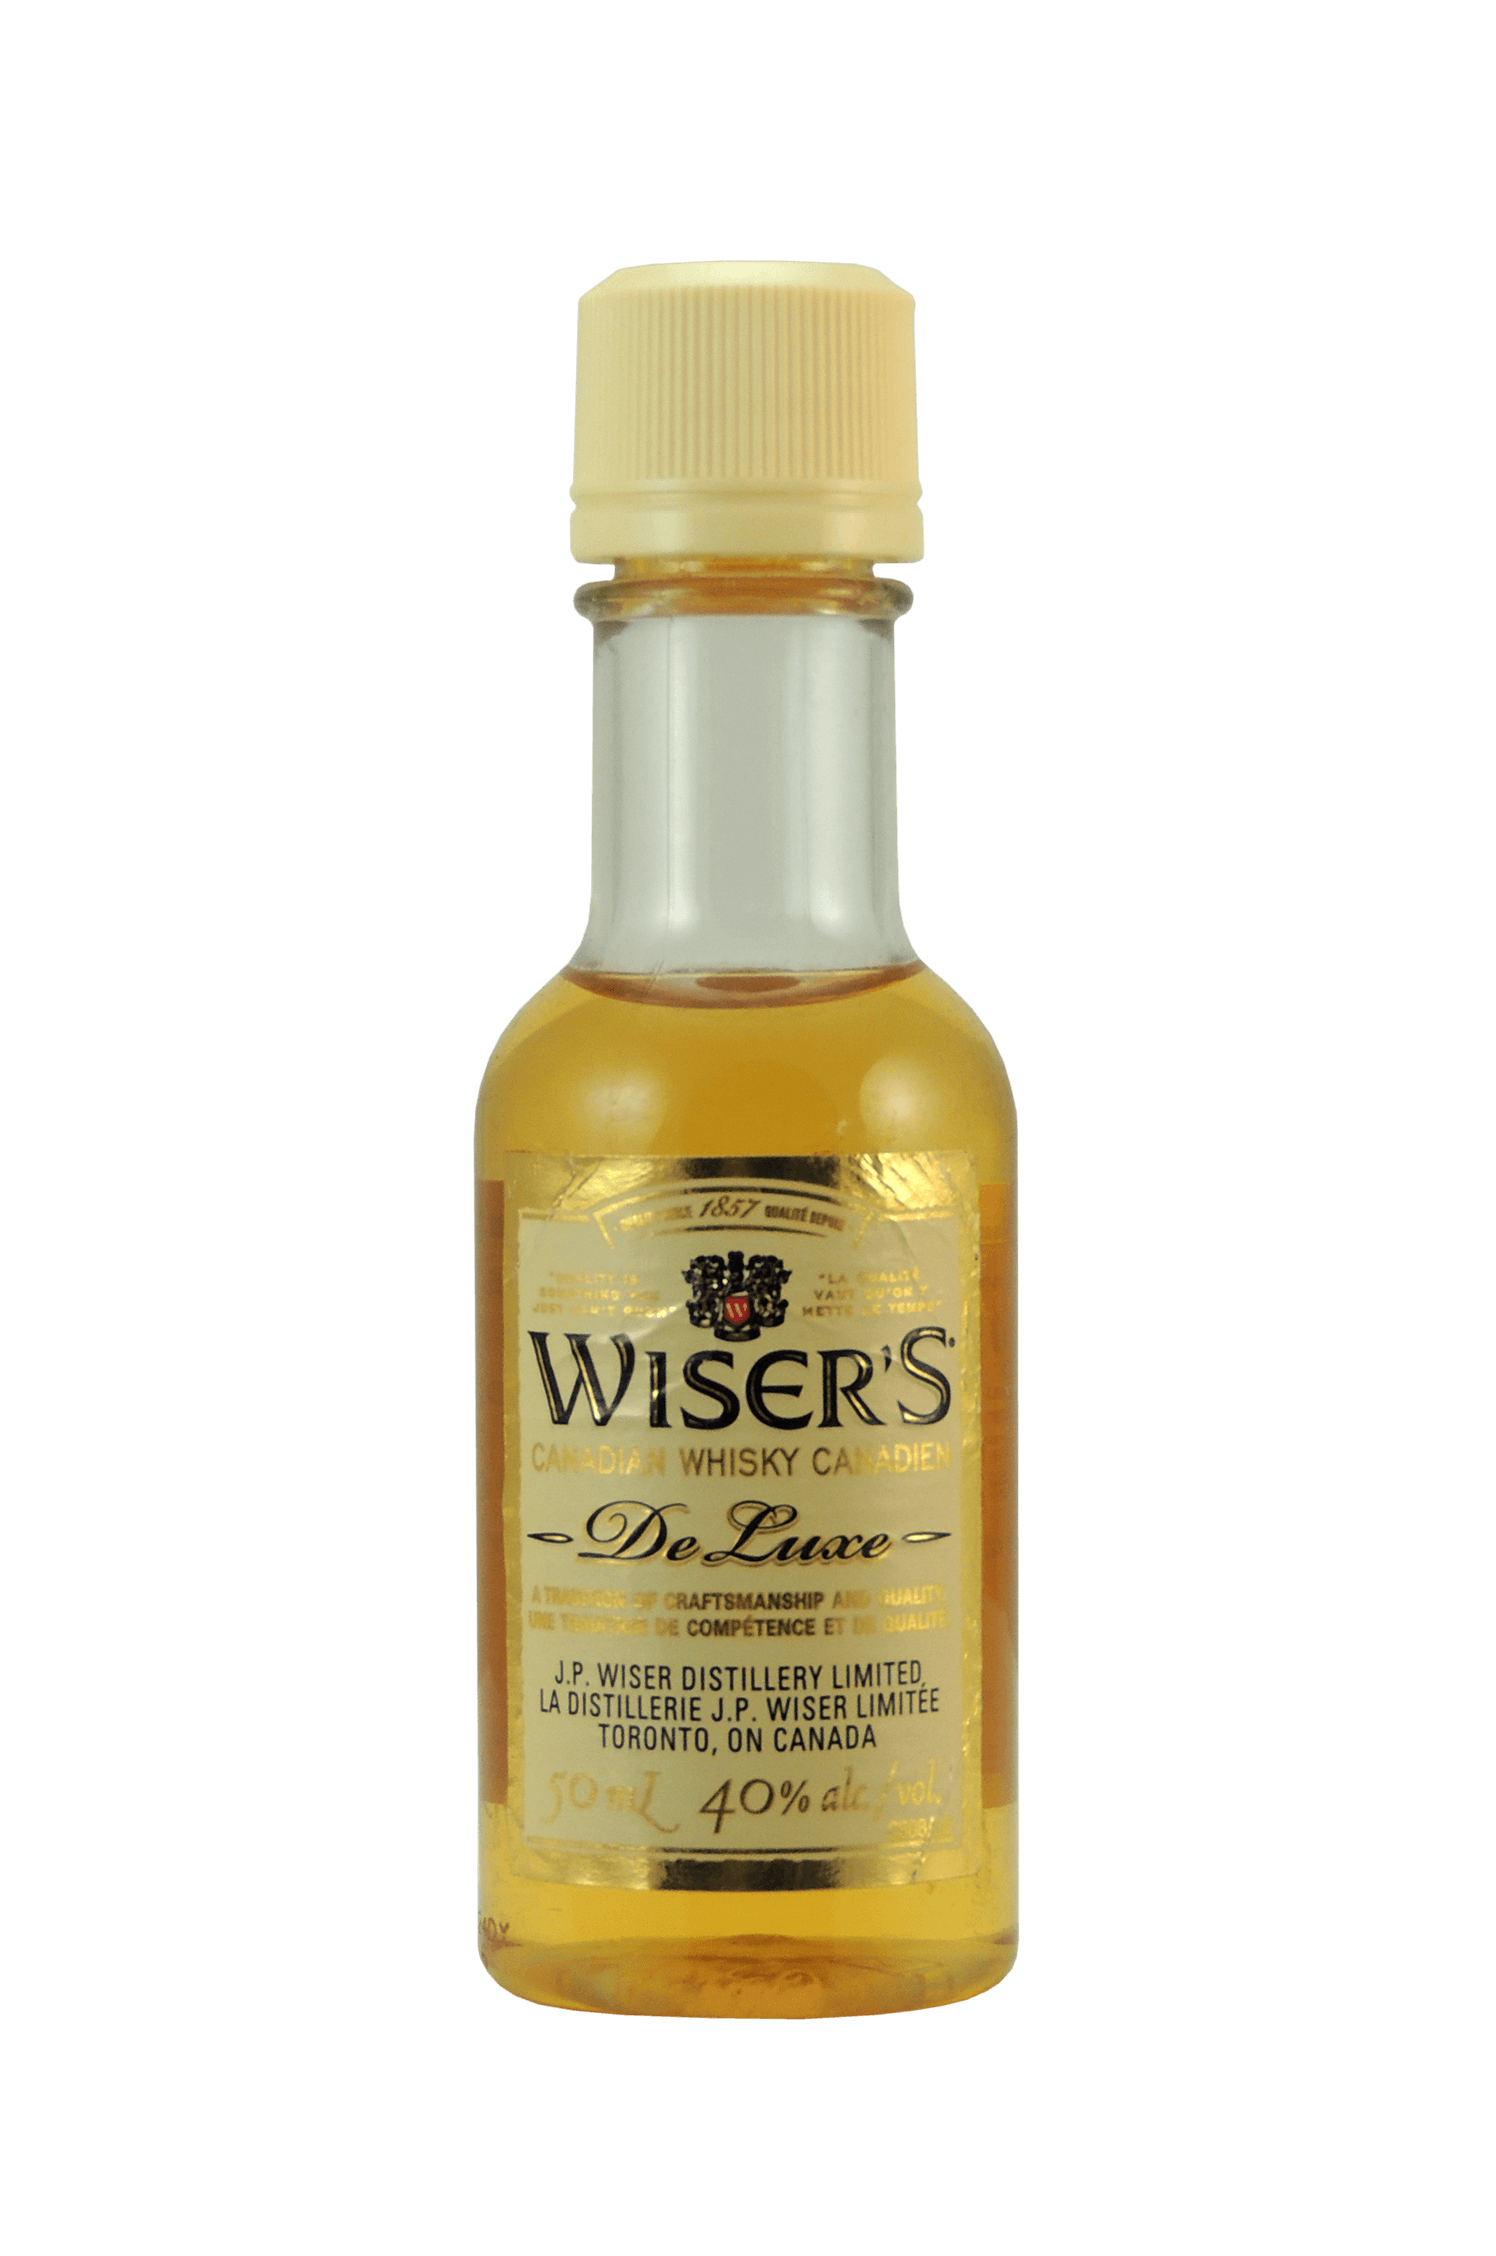 Wiser's Canadian Whisky